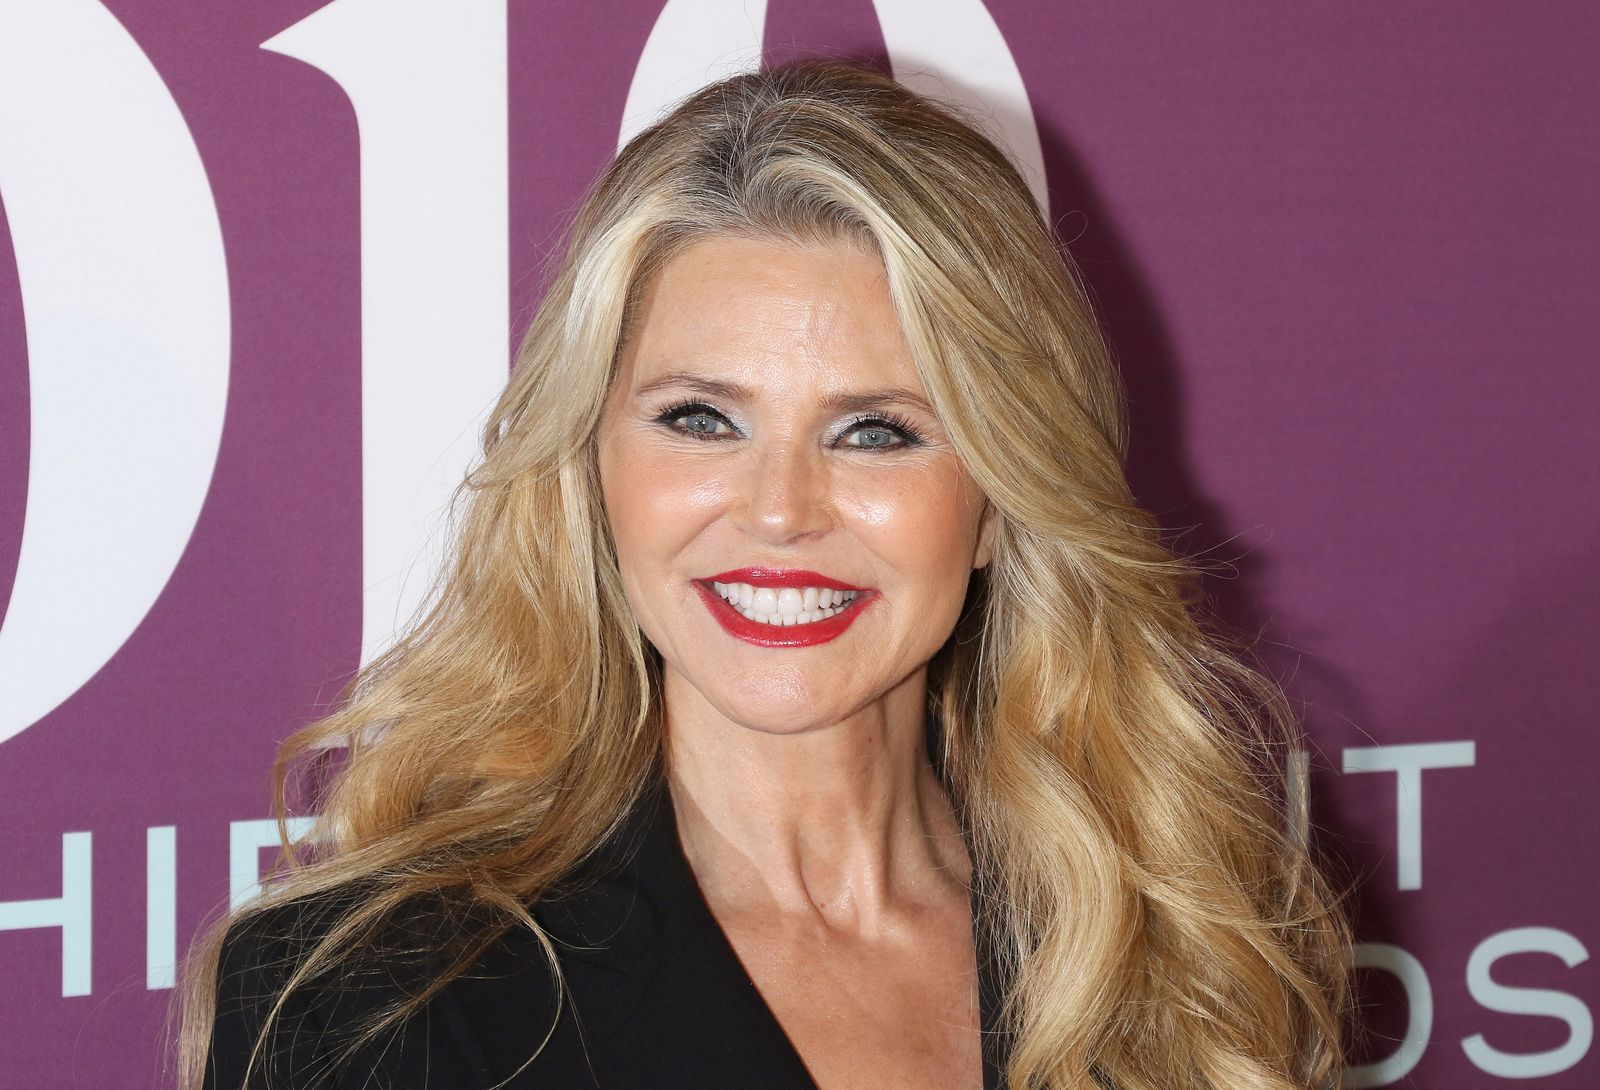 Christie Brinkley at the 2019 FN Achievement Awards at IAC Building on December 03, 2019   Photo: Getty Images